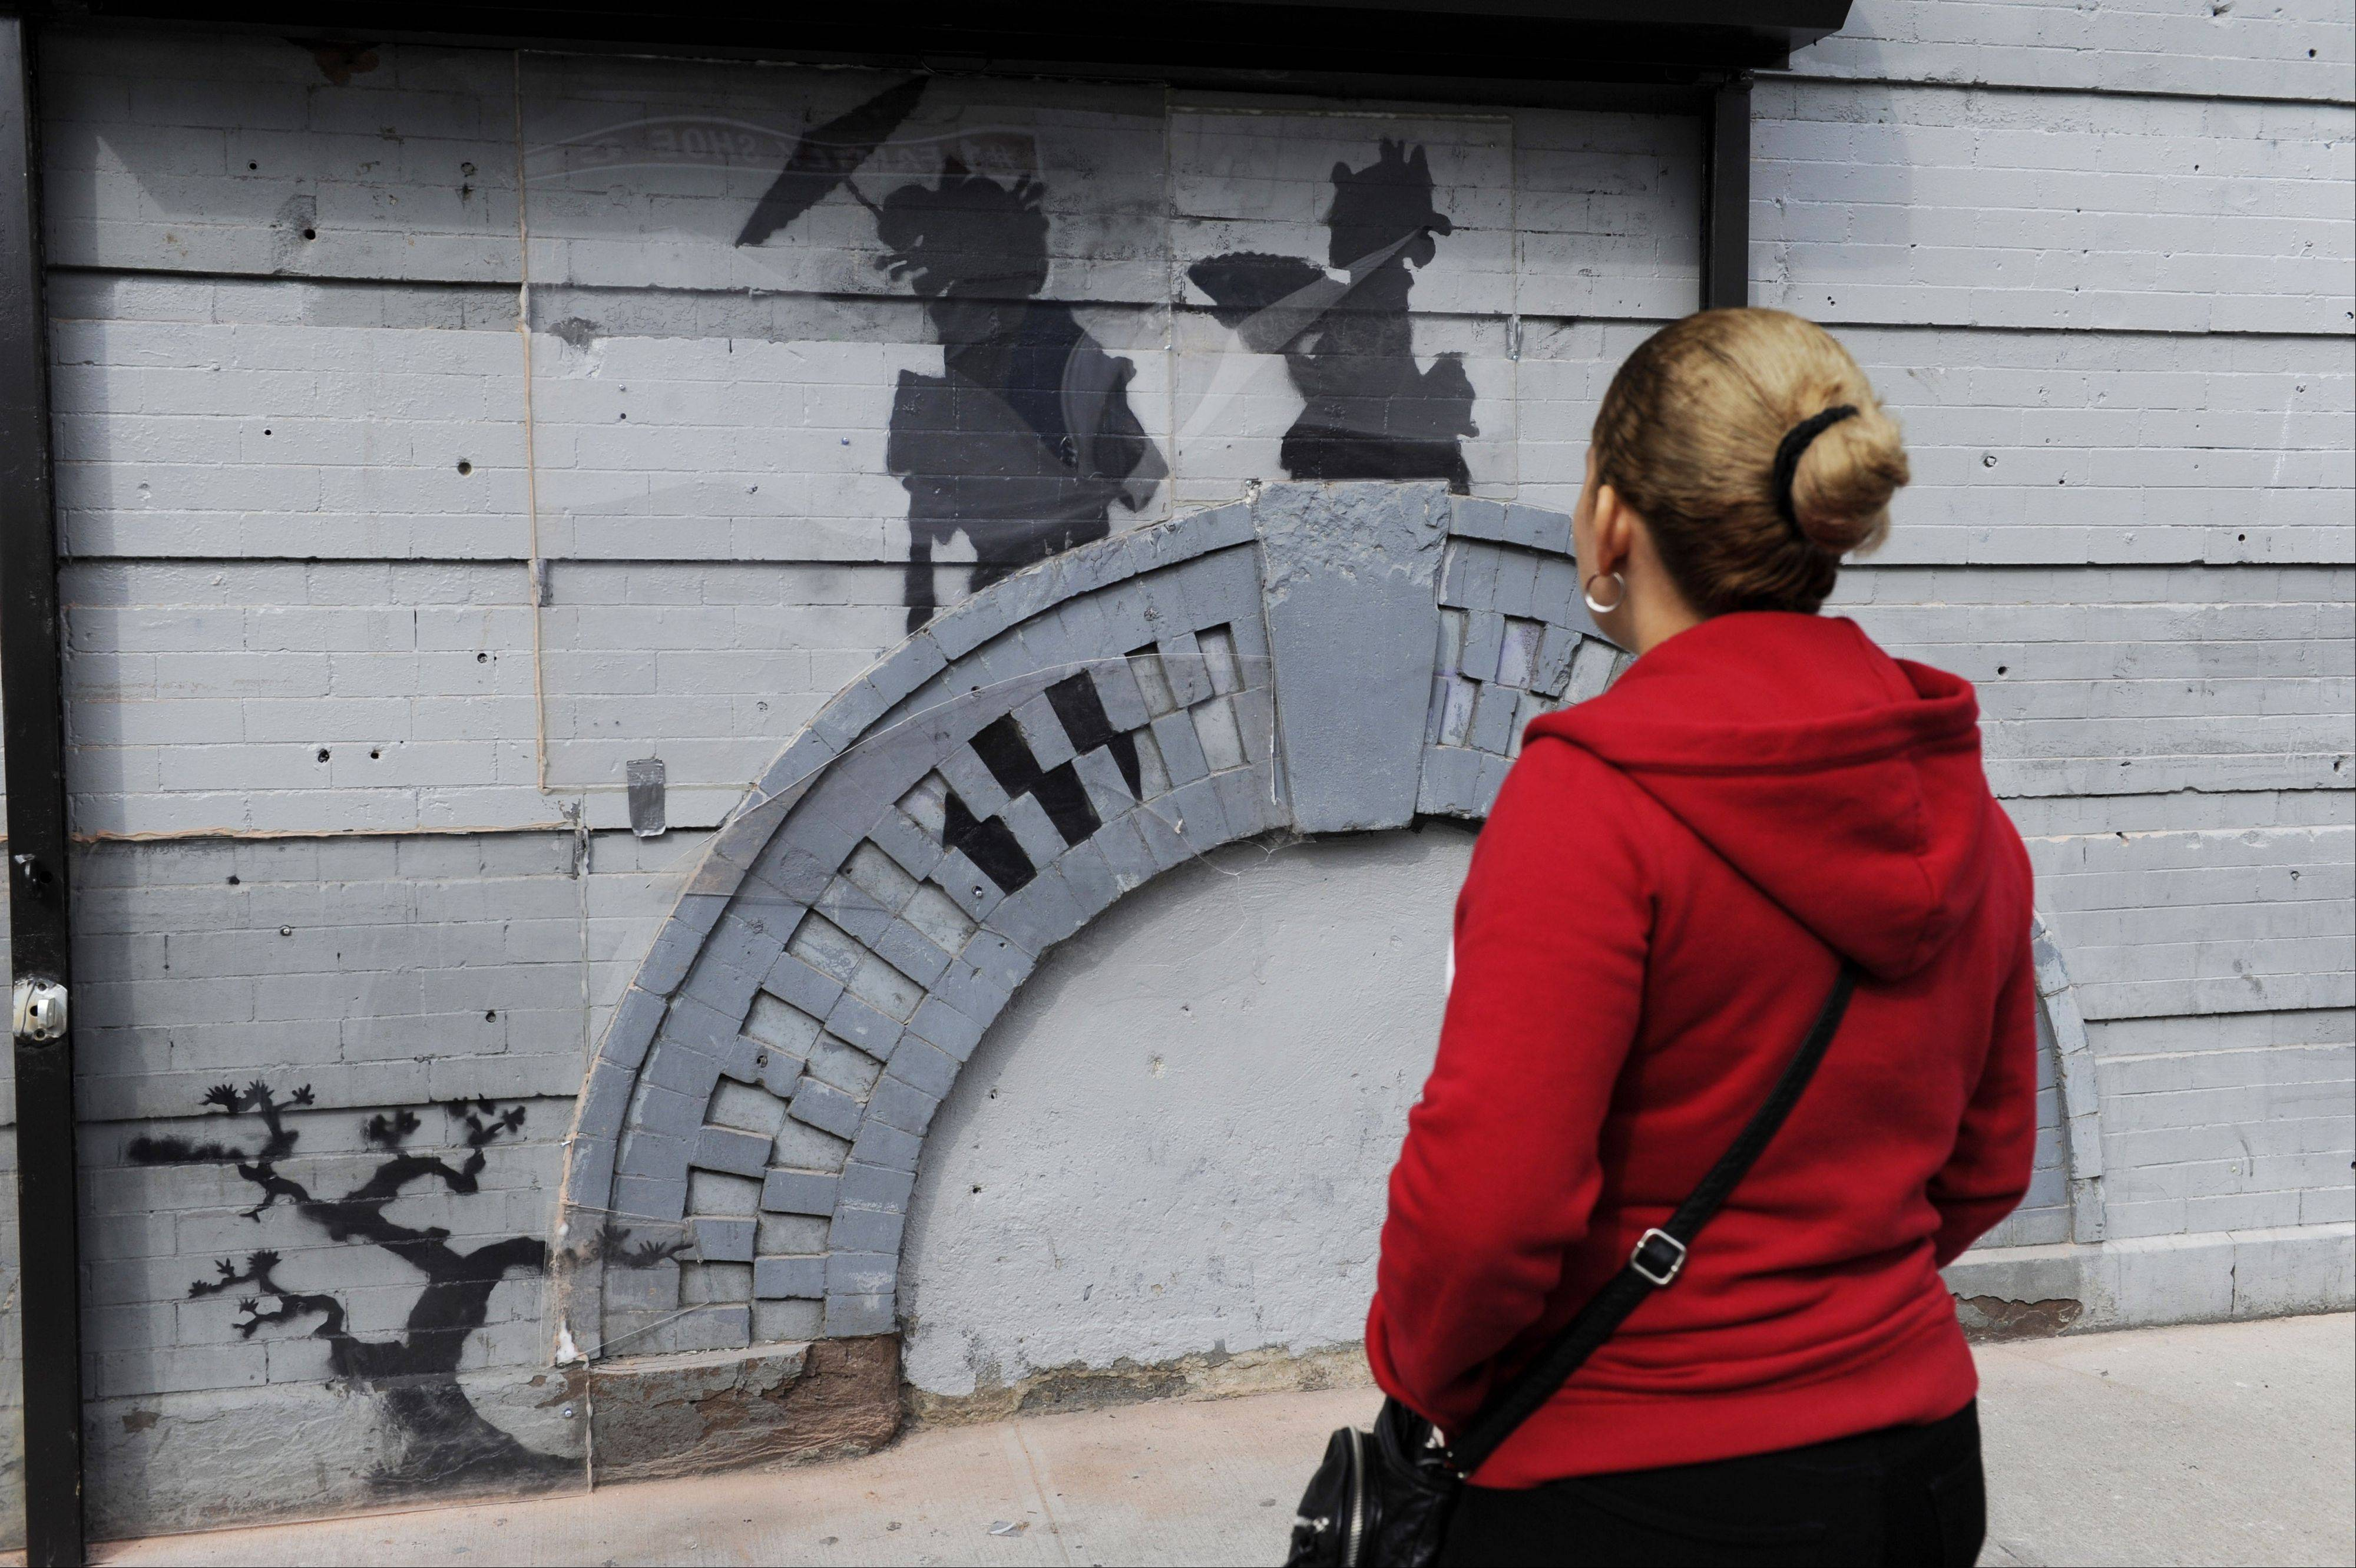 A woman looks at a work by British graffiti artist Banksy in New York's Brooklyn Borough. The secretive street artist ended his self-announced monthlong residency in New York with a final piece of graffiti, a $615,000 painting donated to charity.